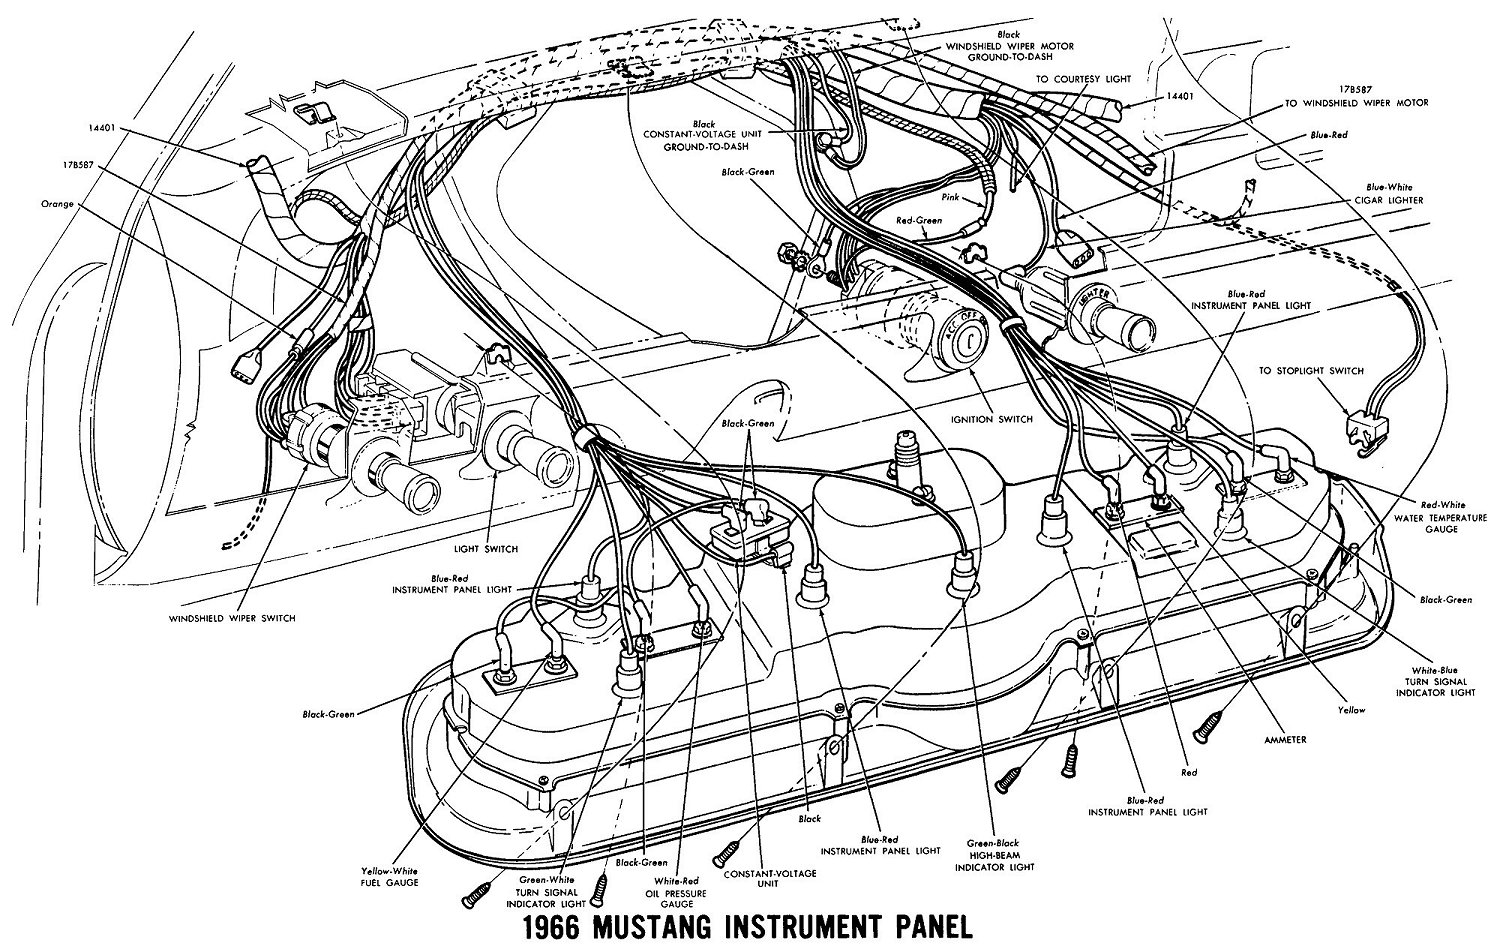 66instr 1966 mustang wiring diagrams average joe restoration 1966 fender mustang wiring diagram at alyssarenee.co